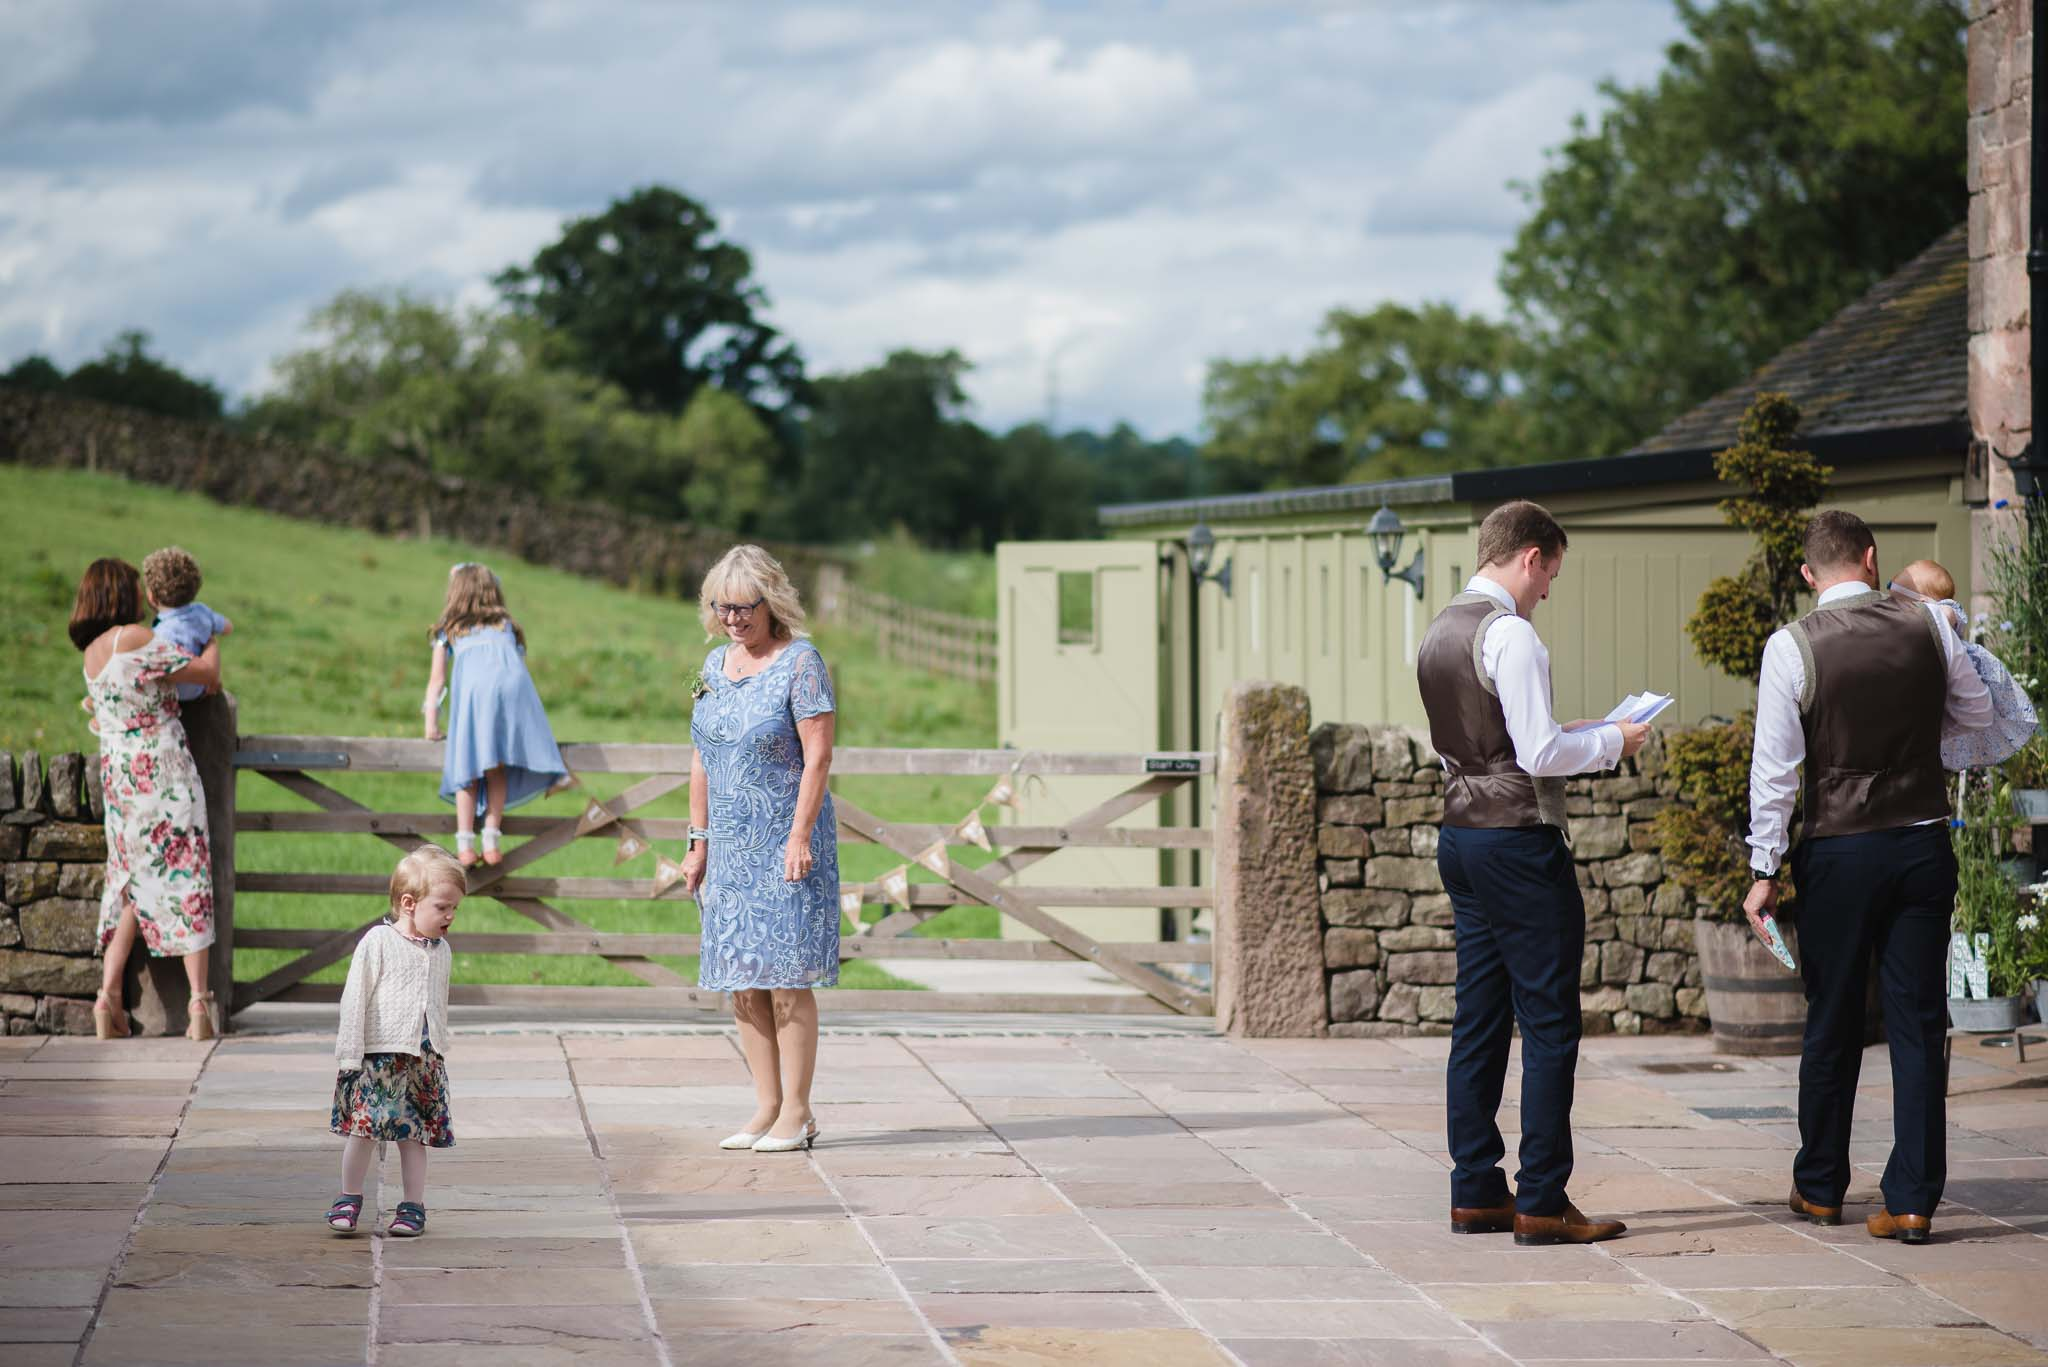 The_Ashes_Barns_Country_House_Wedding_Emma_Hare_Photography_Bev_Nathan-43.jpg